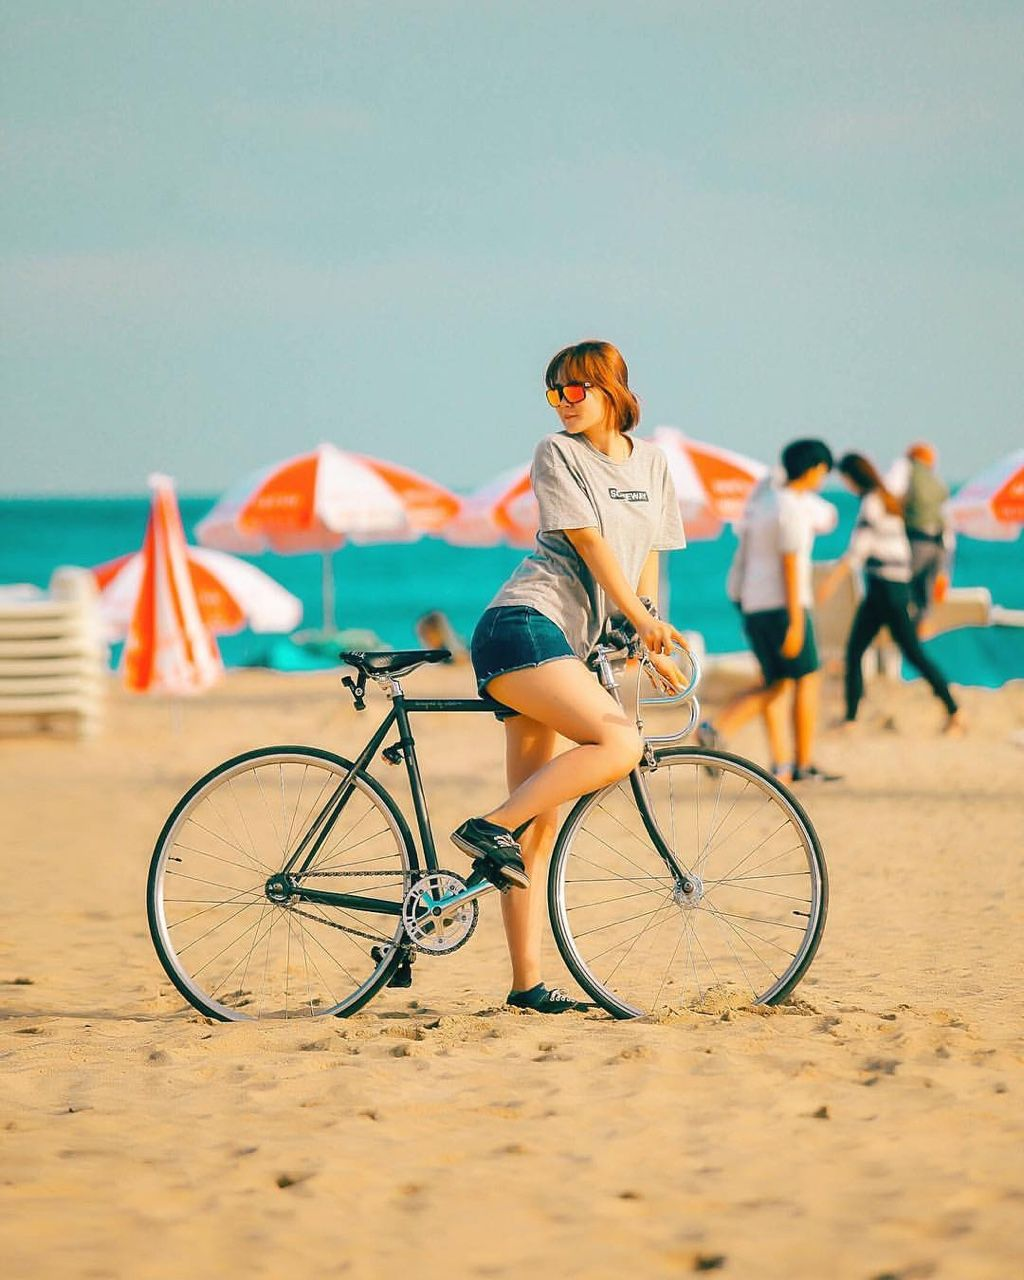 Picture perfect, summer, beach, fixie, fixie girl!